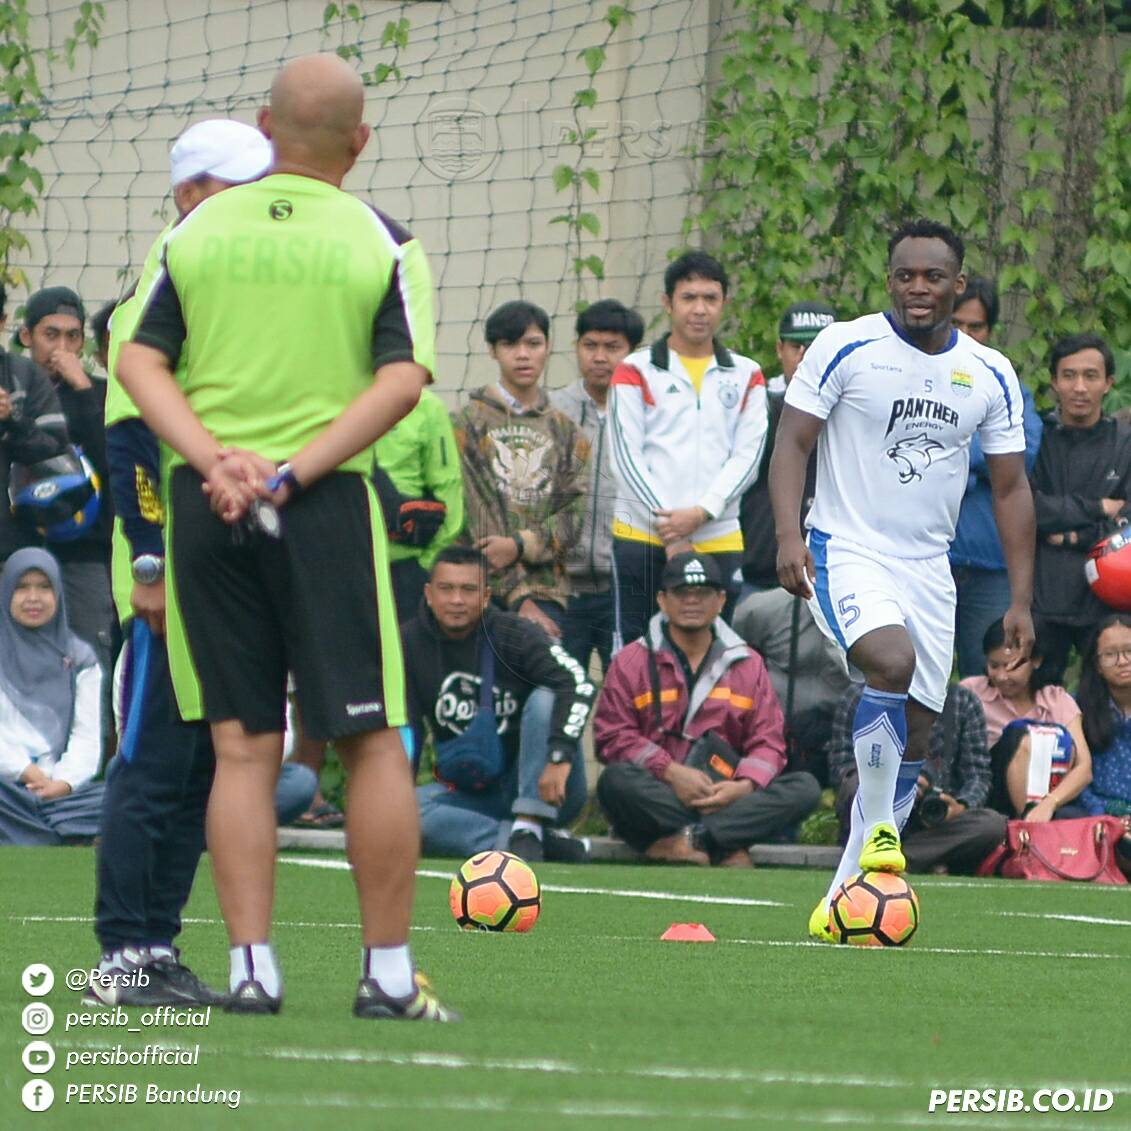 Pictures: Michael Essien unveiled to fans of Indonesian side Persib Bandung